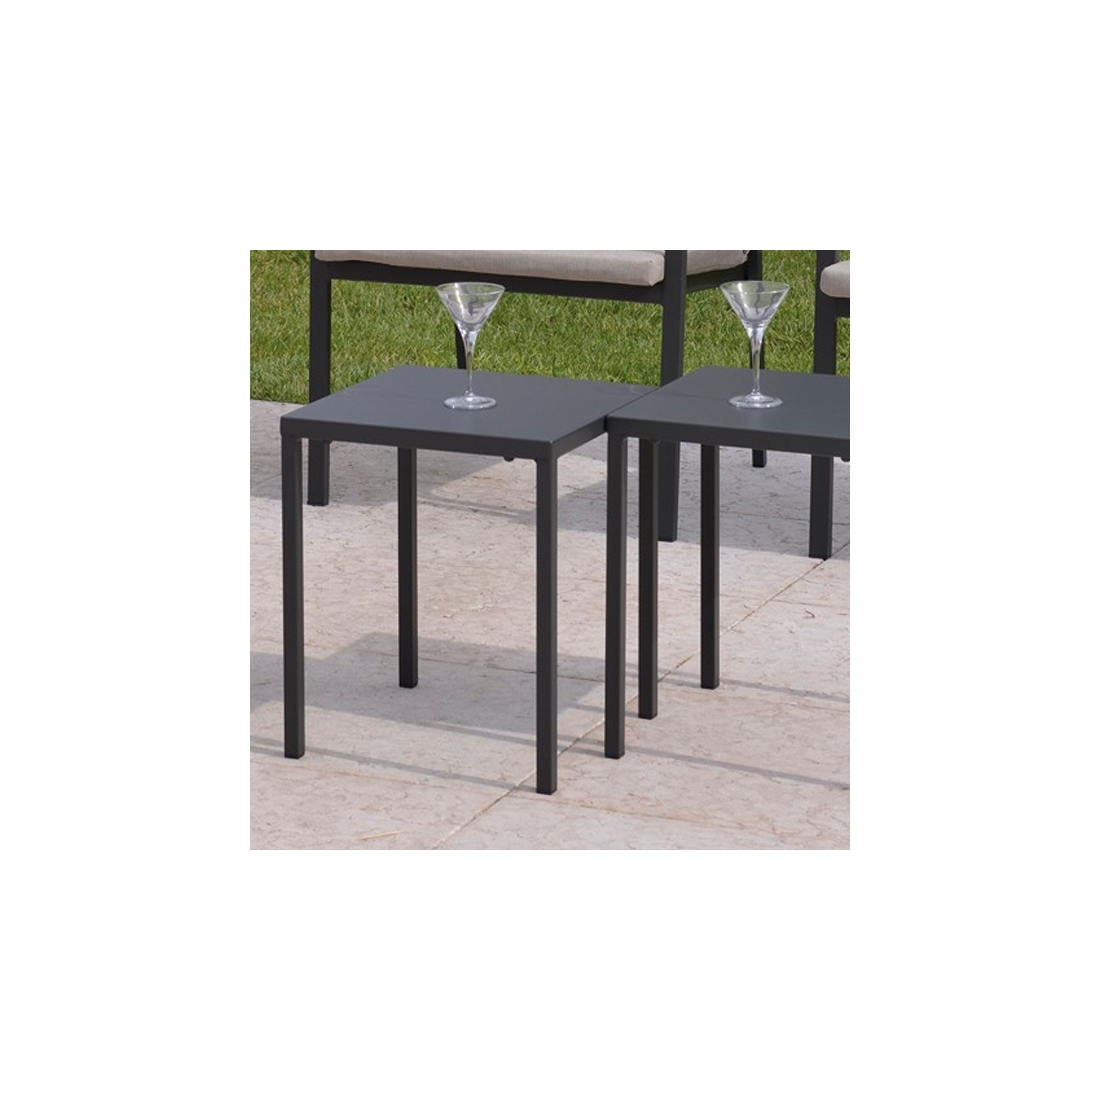 Petite table basse de jardin rd italia zendart design - Table basse exterieur design ...